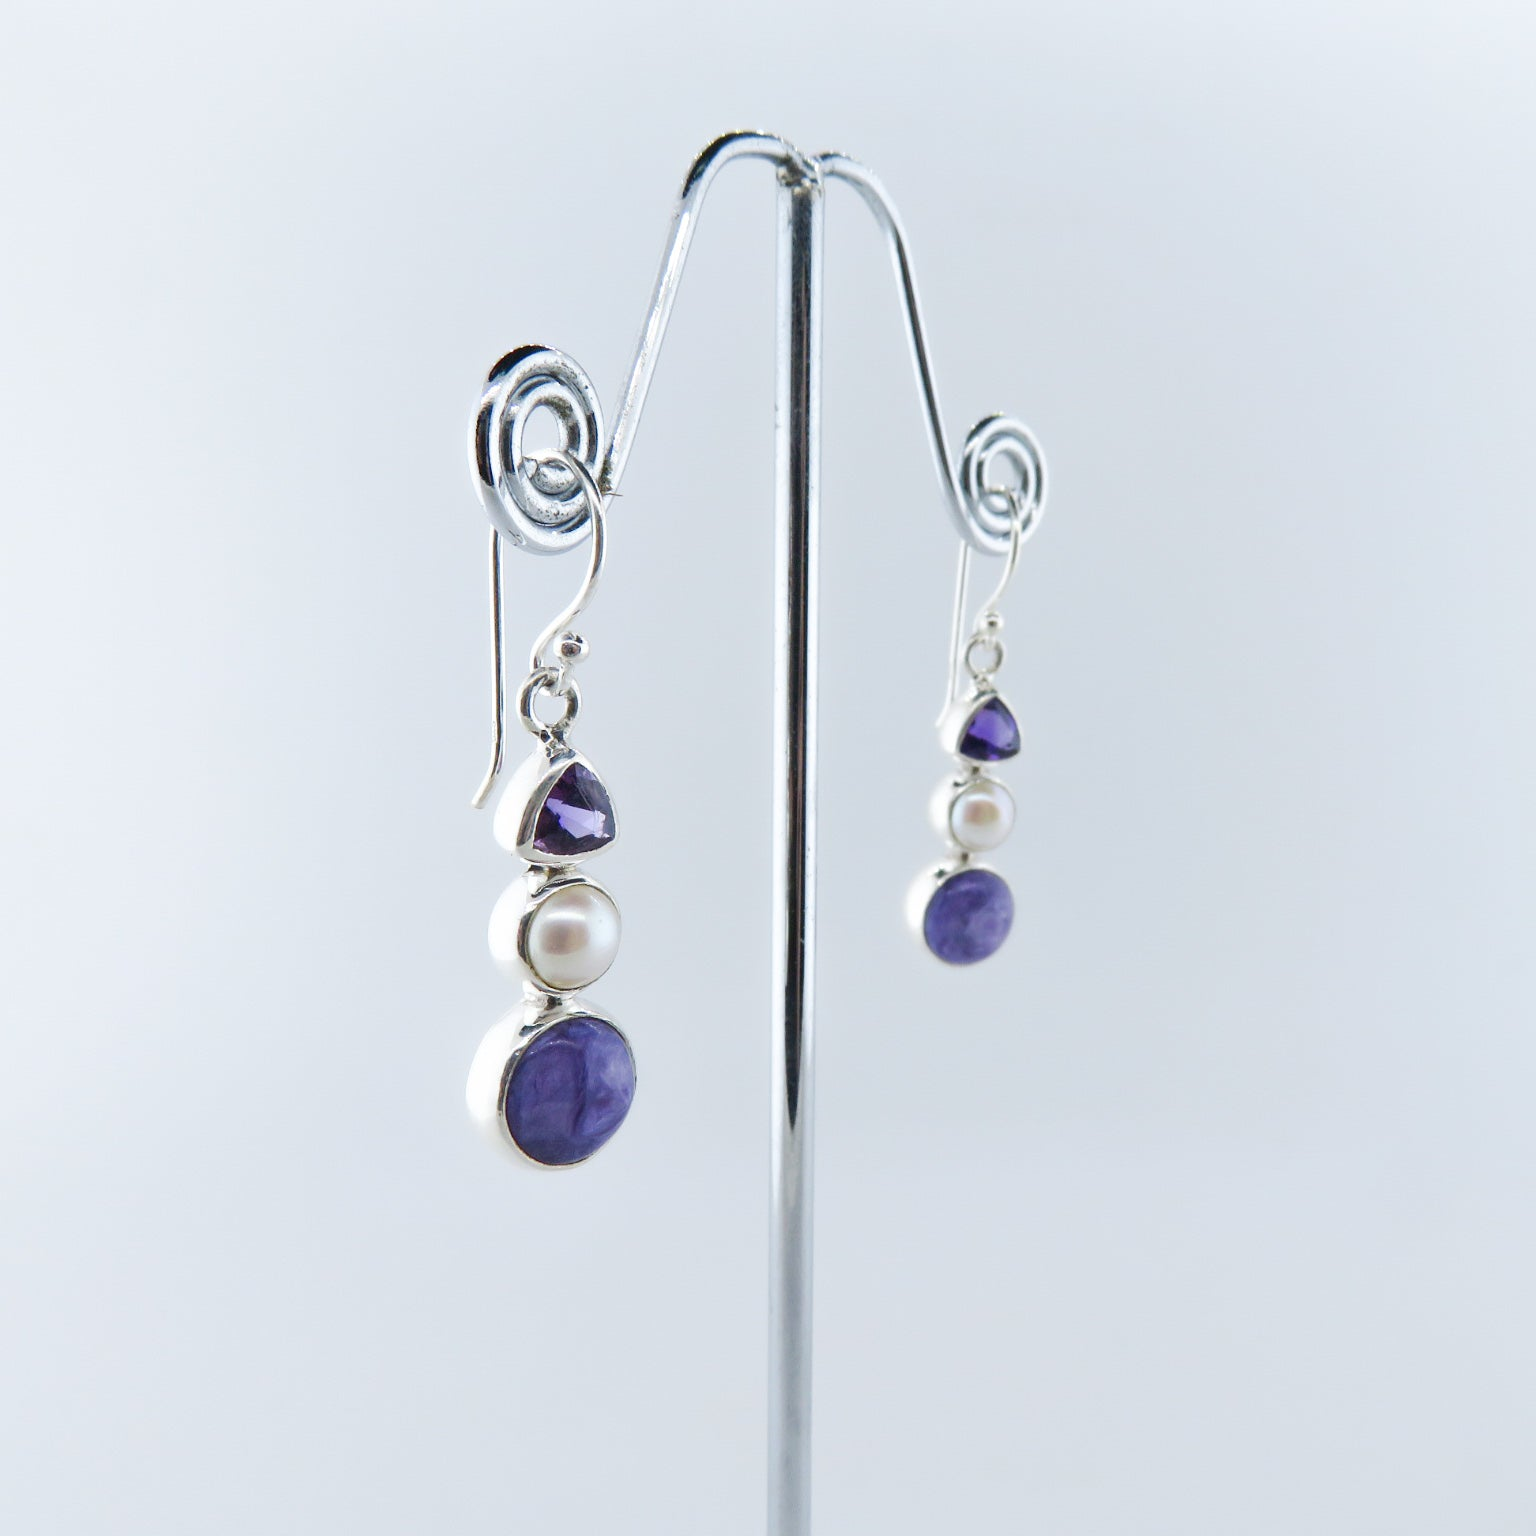 Charoite Sterling Silver Earrings with Amethyst and Fresh Water Pearls